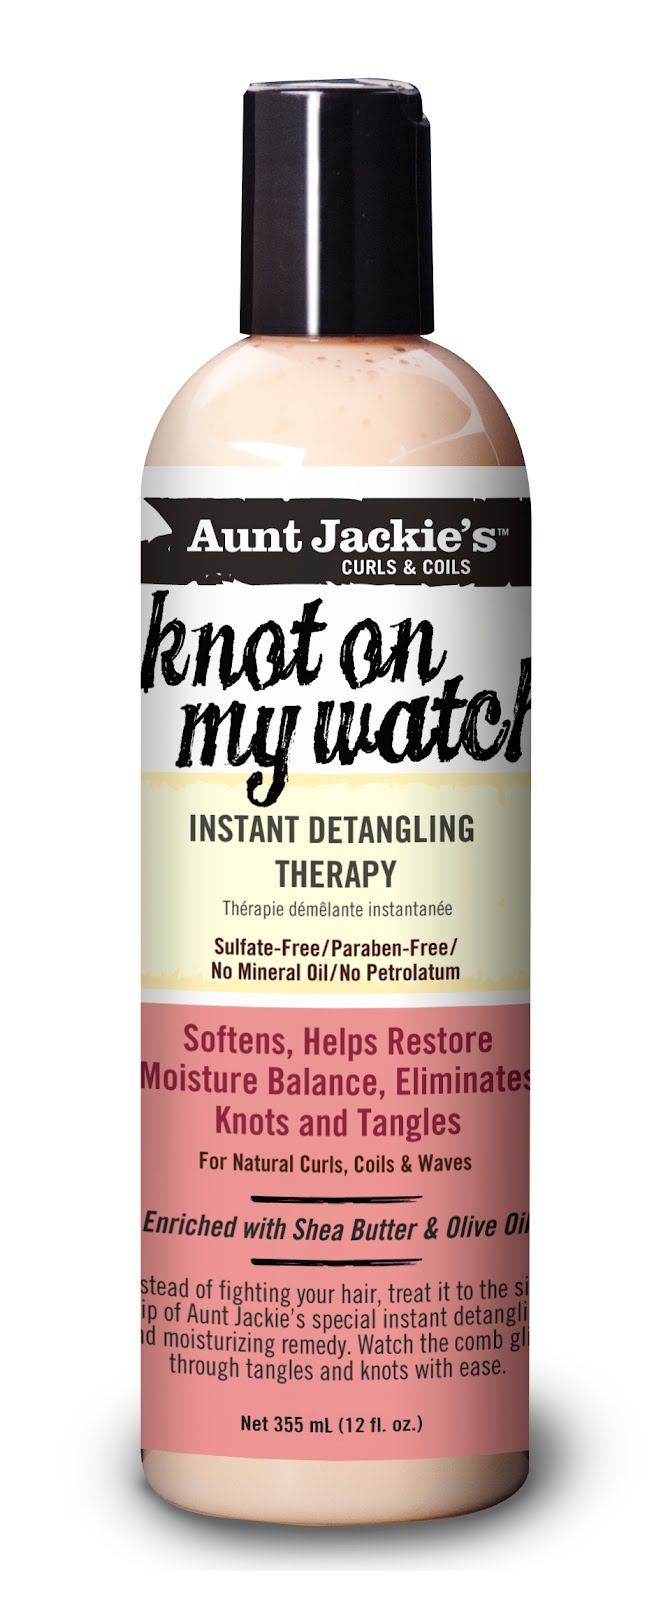 Aunt Jackies Knot On My Watch Instant Detangling Therapy